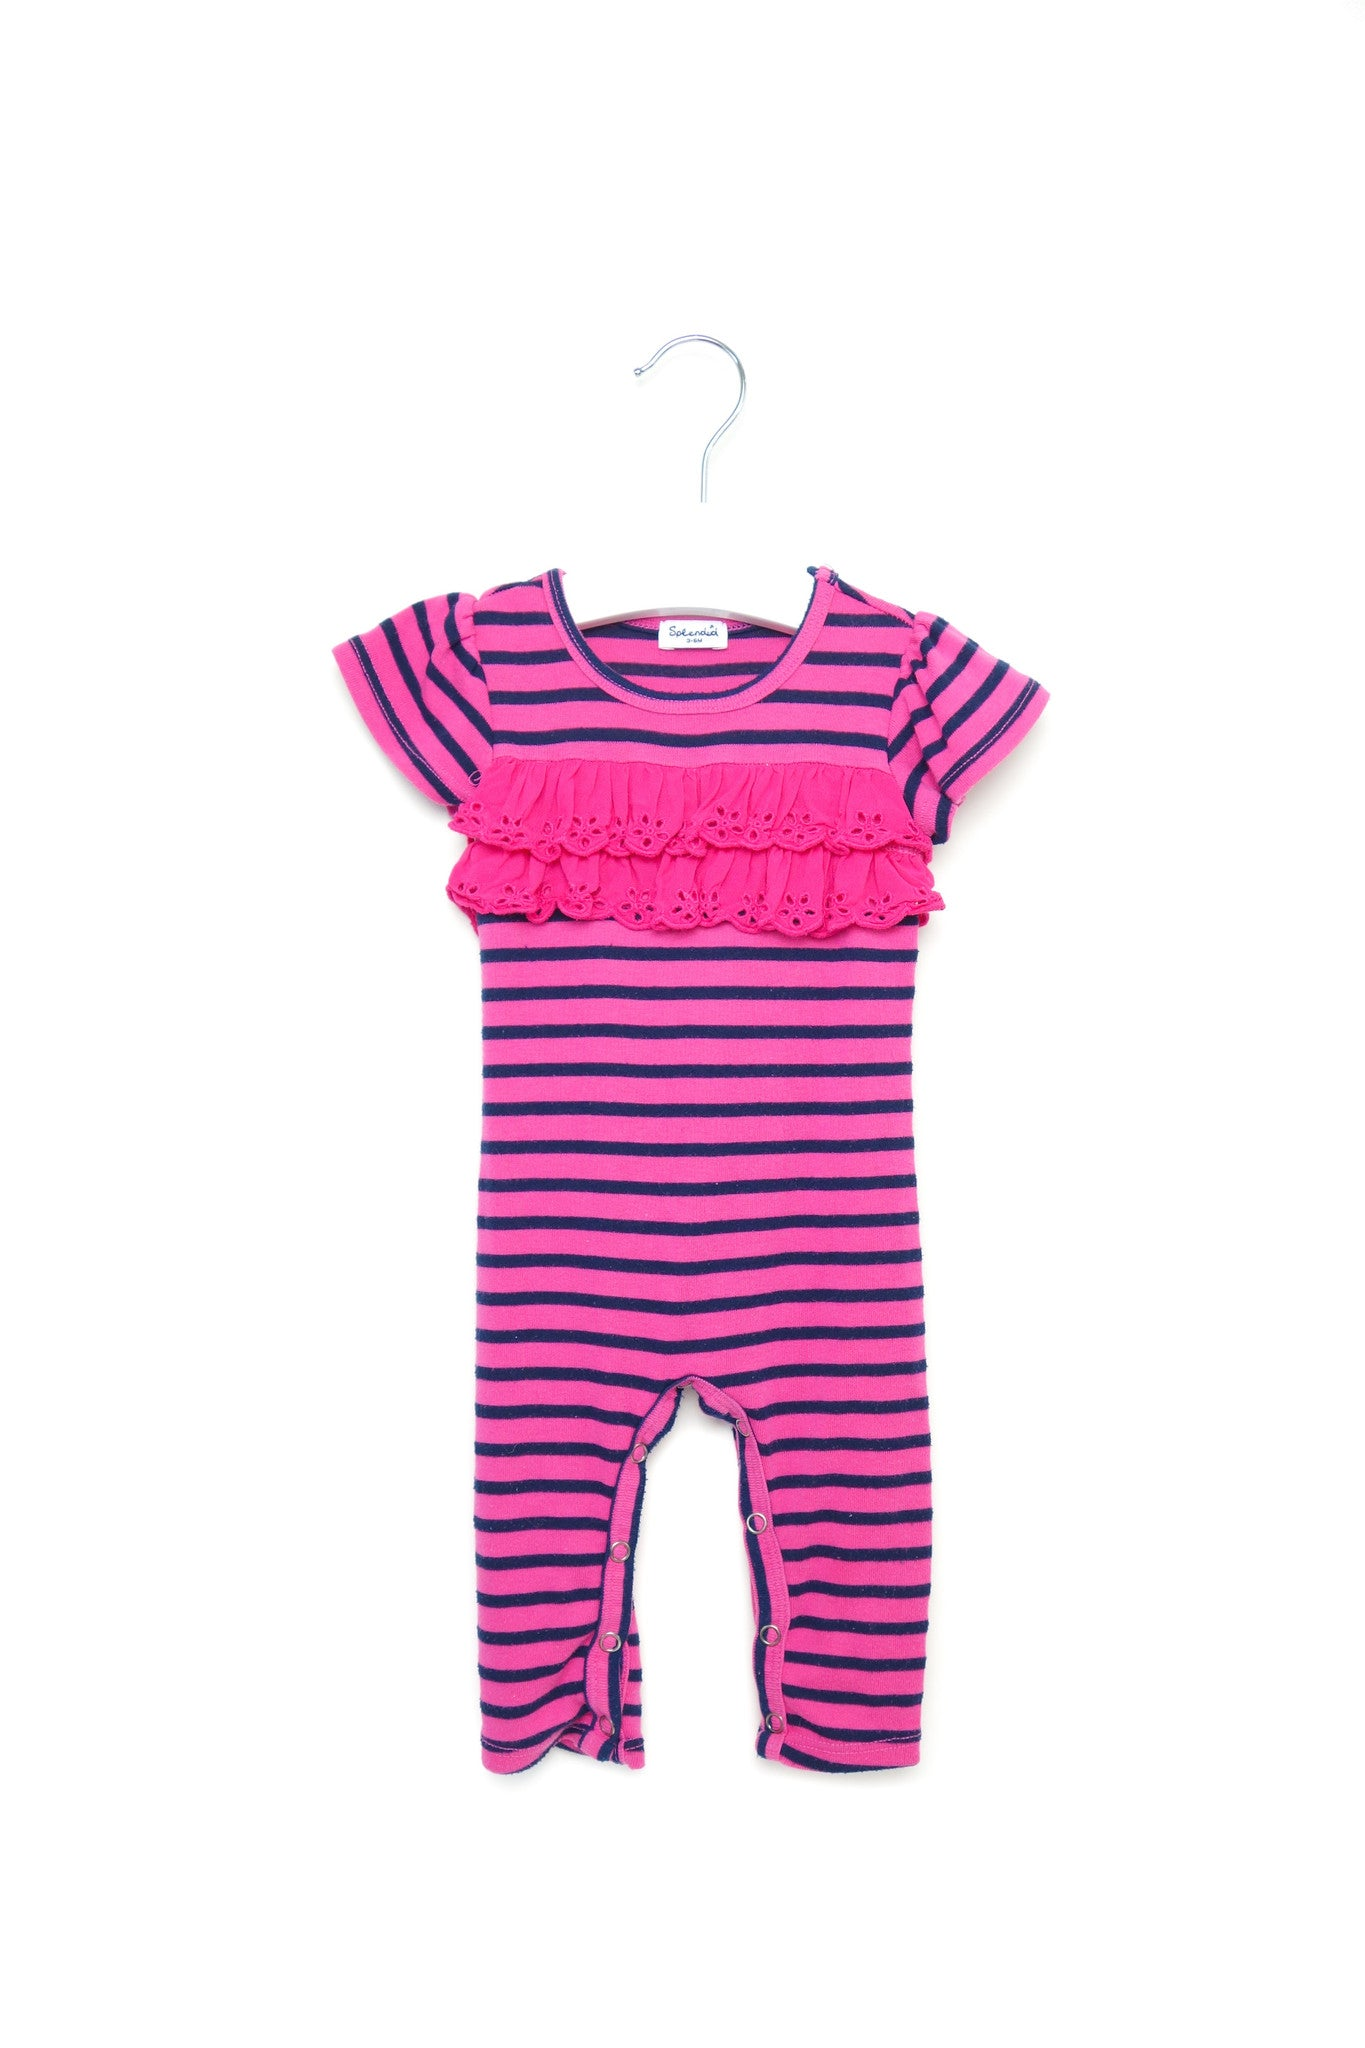 10001524~Jumpsuit 3-6M, Splendid at Retykle - Online Baby & Kids Clothing Up to 90% Off